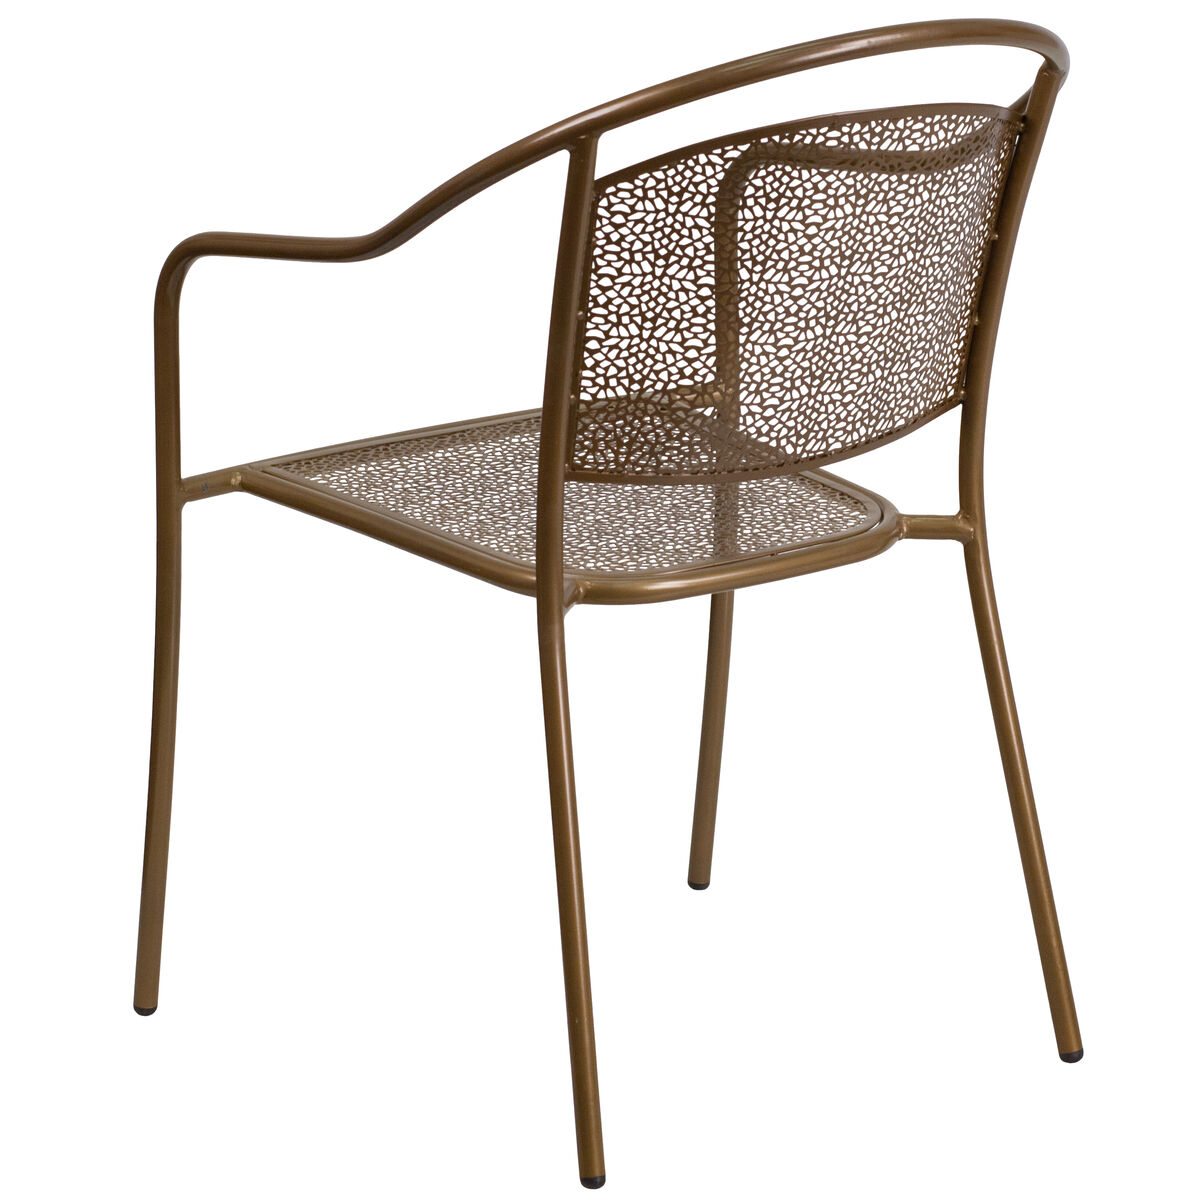 Gold patio chair round back co 3 gd gg for Furniture 4 schools